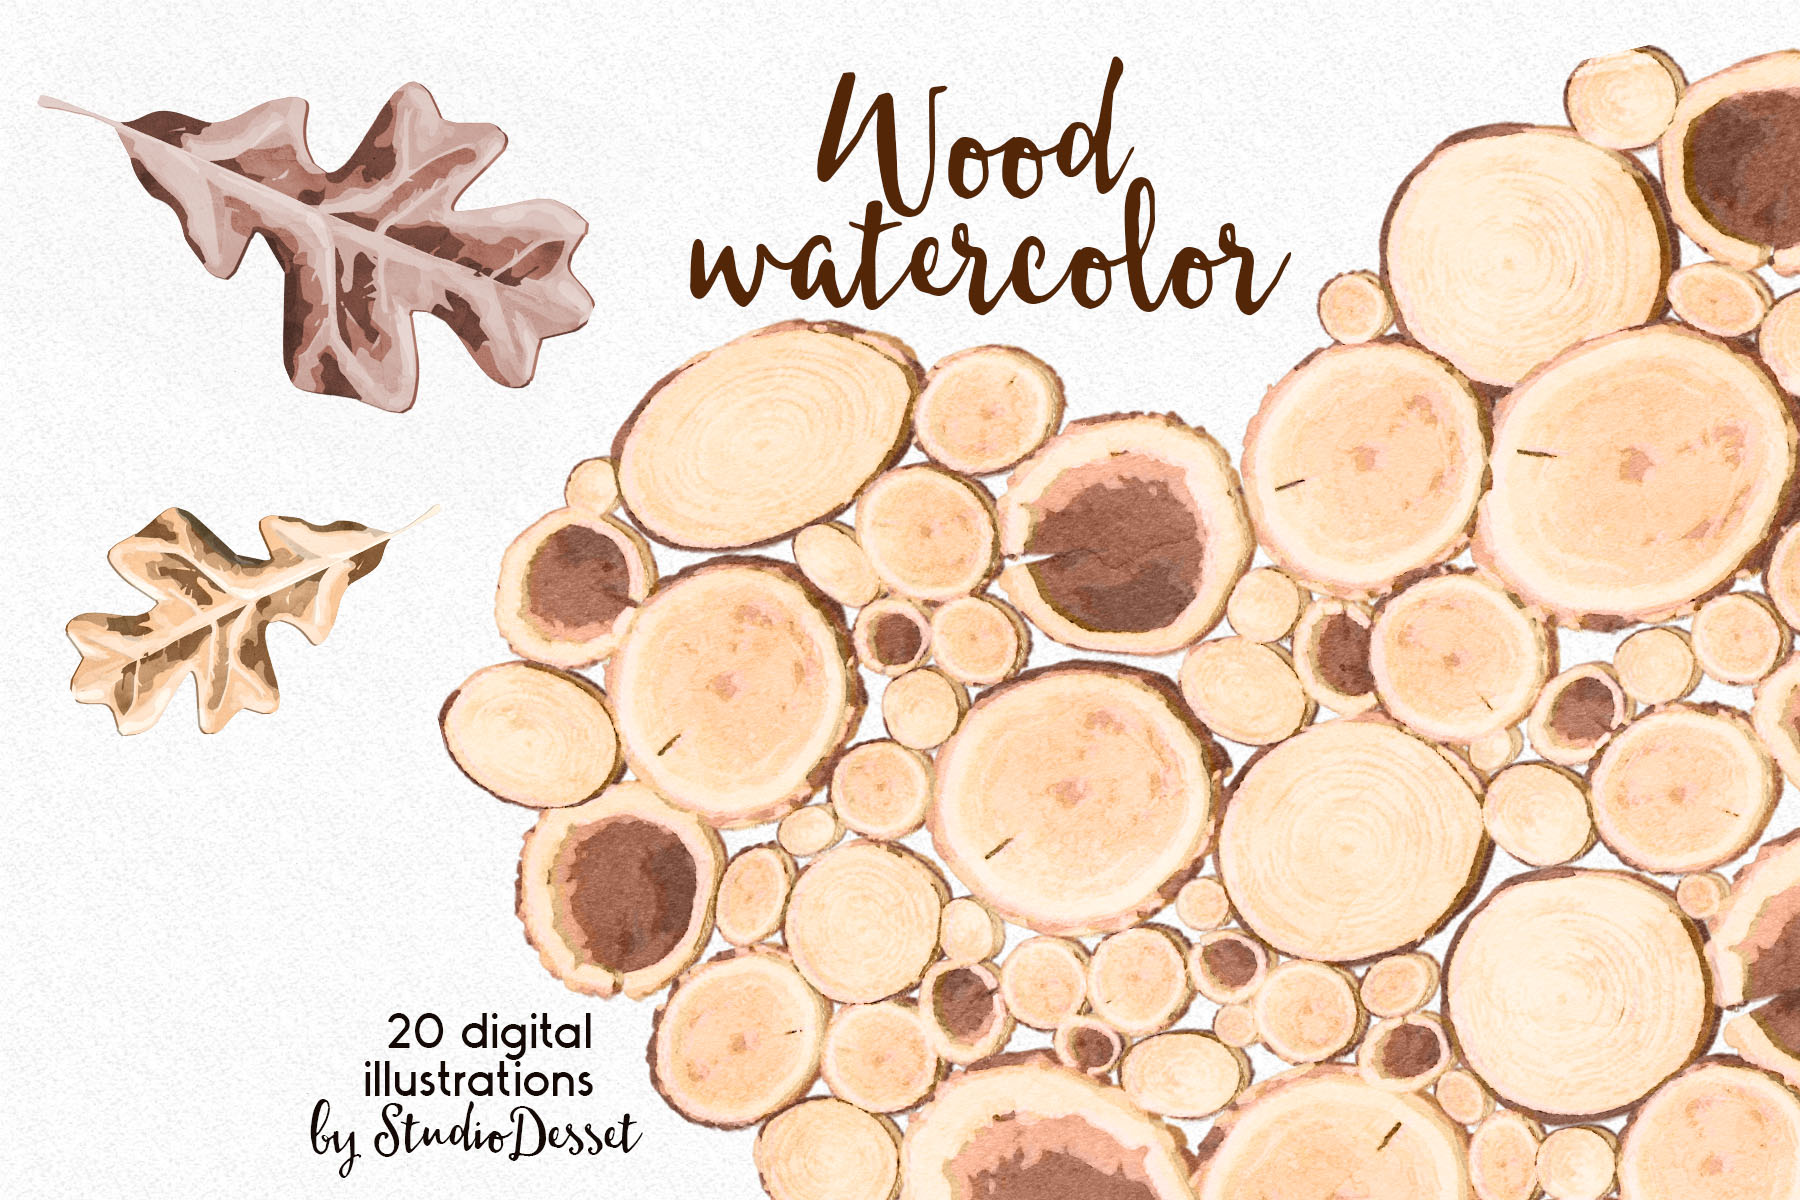 Rustic Wood Watercolor Illustrations example image 3